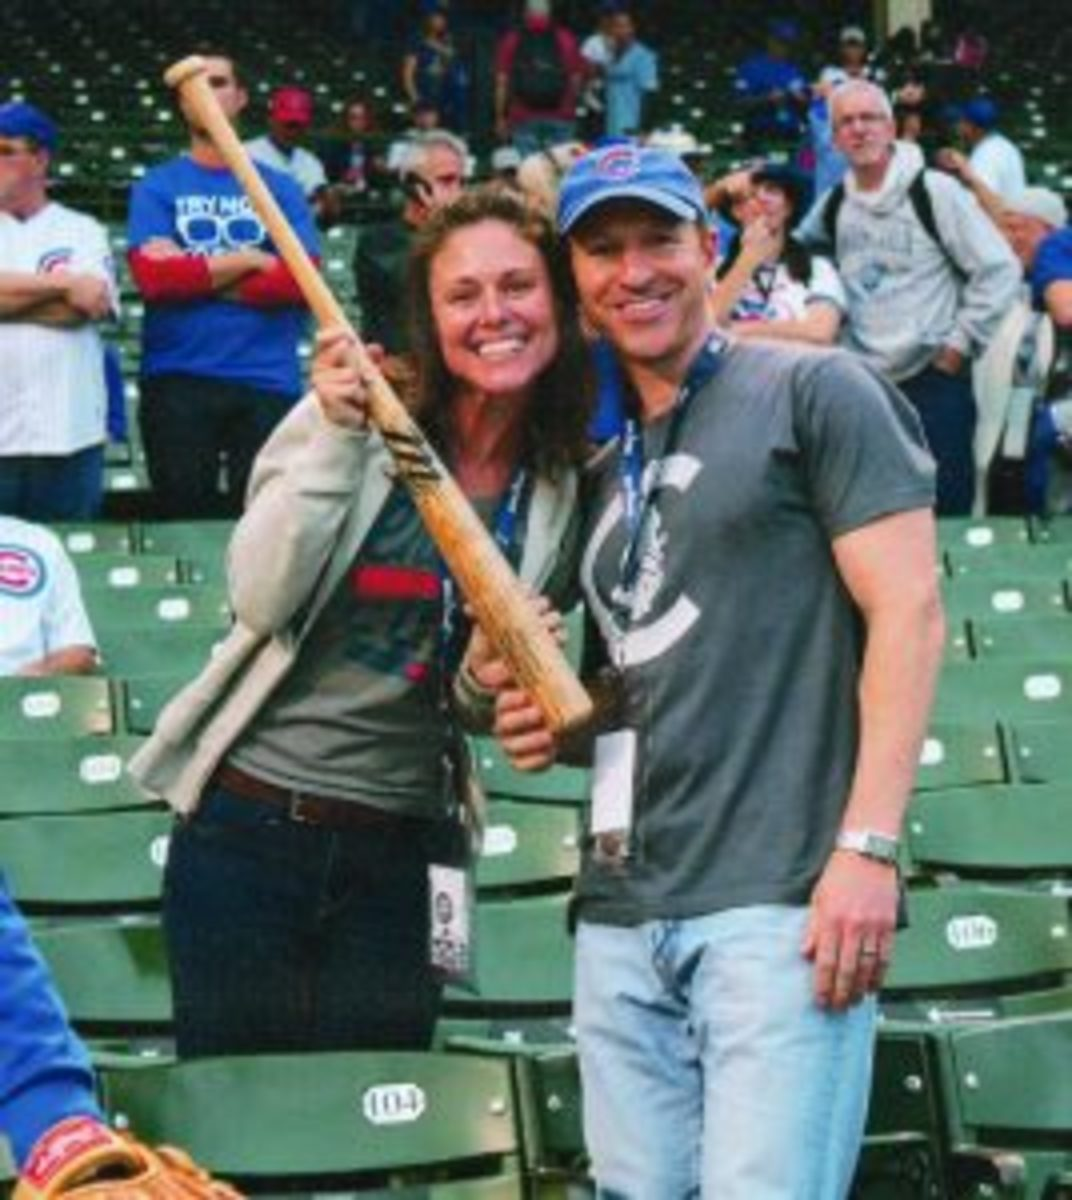 On the spur of the moment Addison Russell gave his bat to this couple after batting practice prior to Game 3 of the World Series.